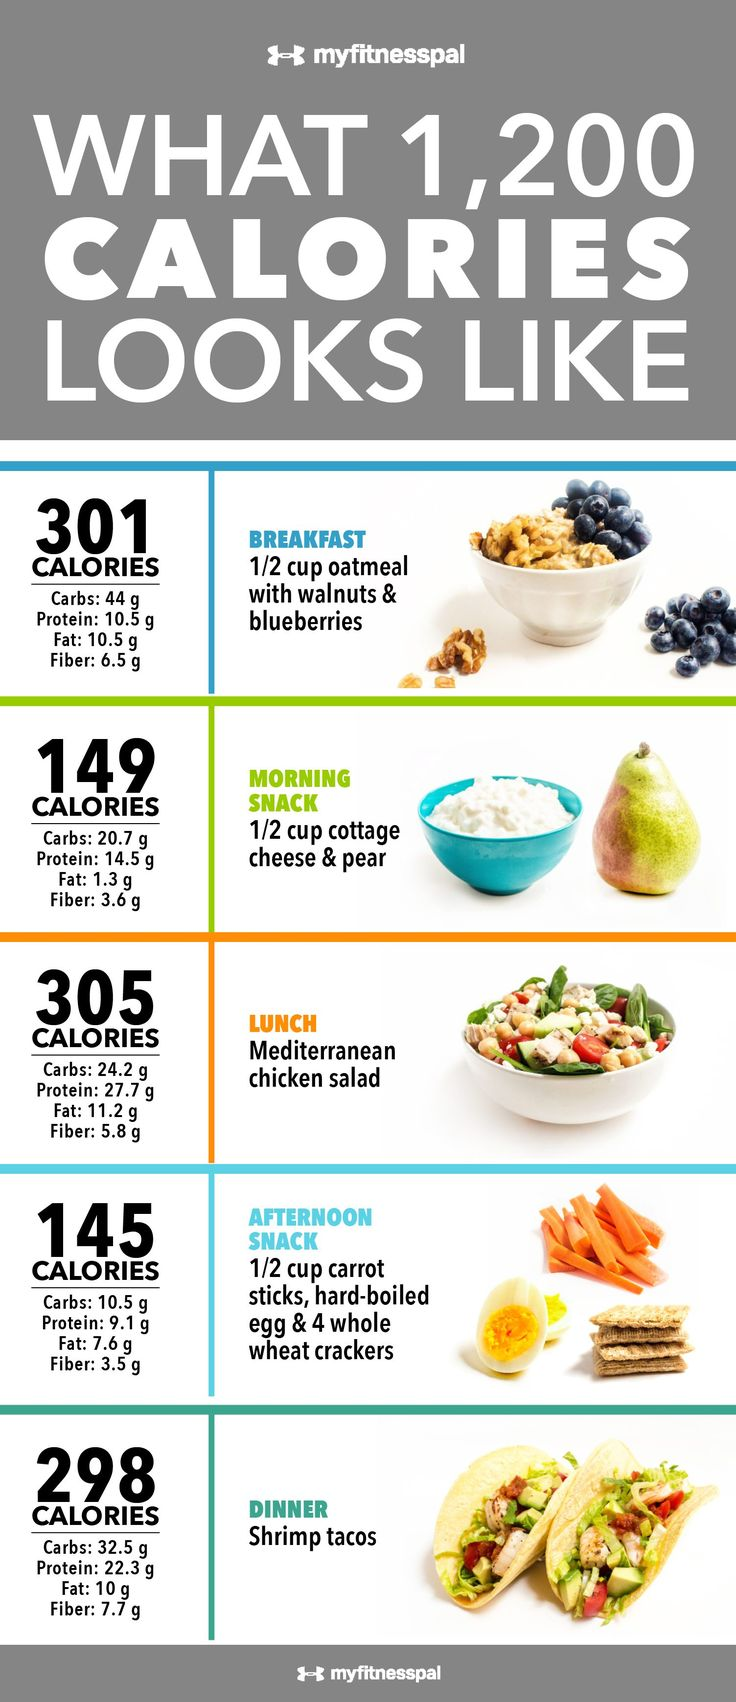 Best Calorie Diet Ideas On Pinterest Calorie Meal - 1200 calorie meal plan for weight loss